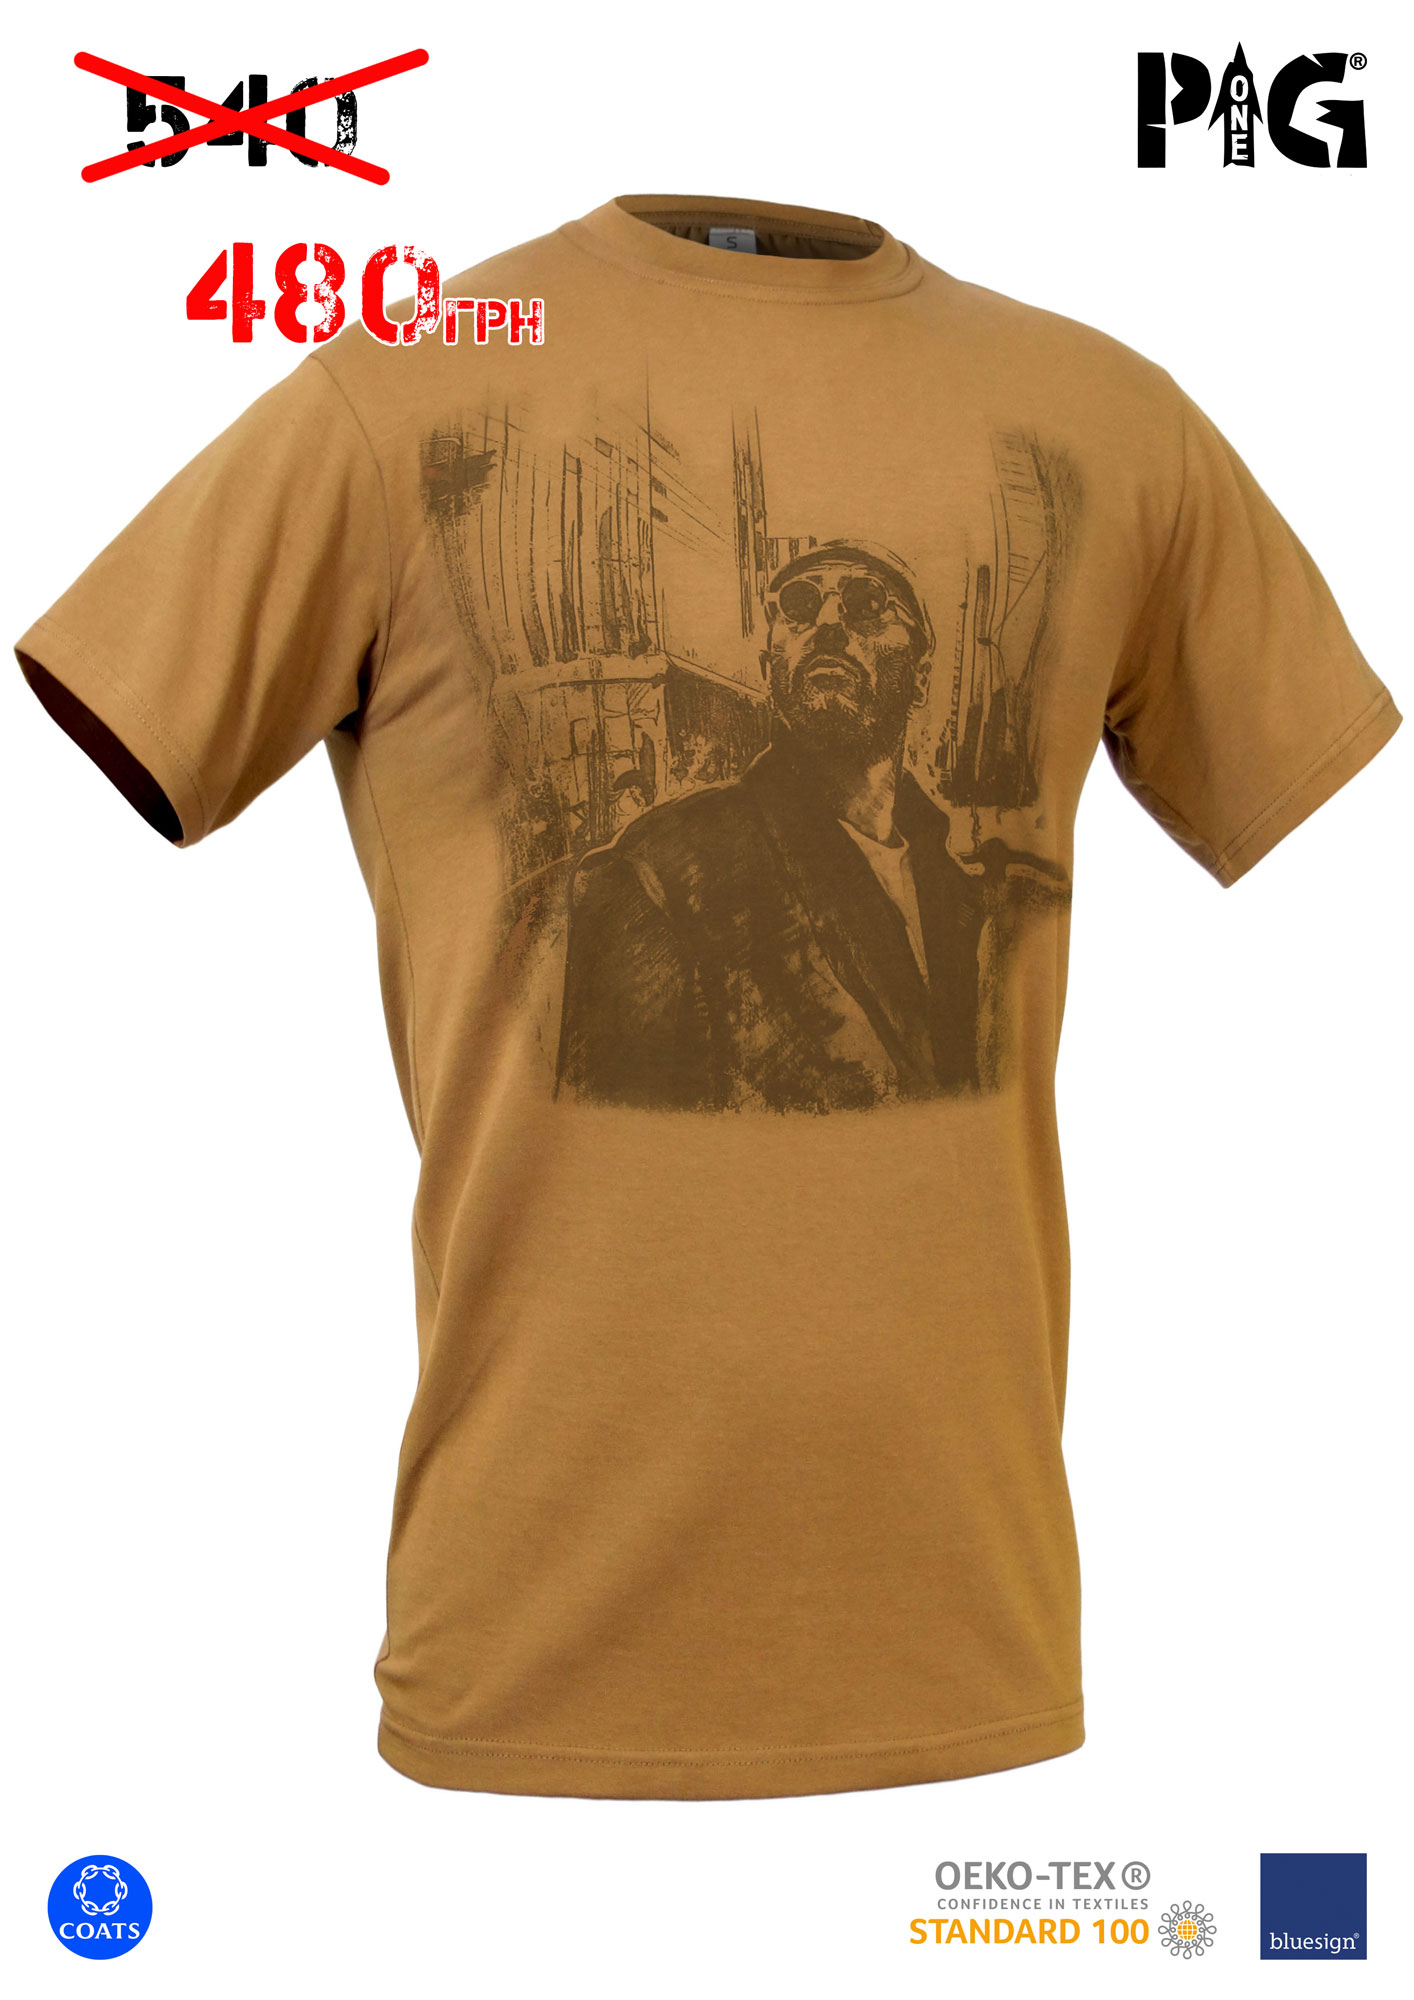 Military style T-shirt